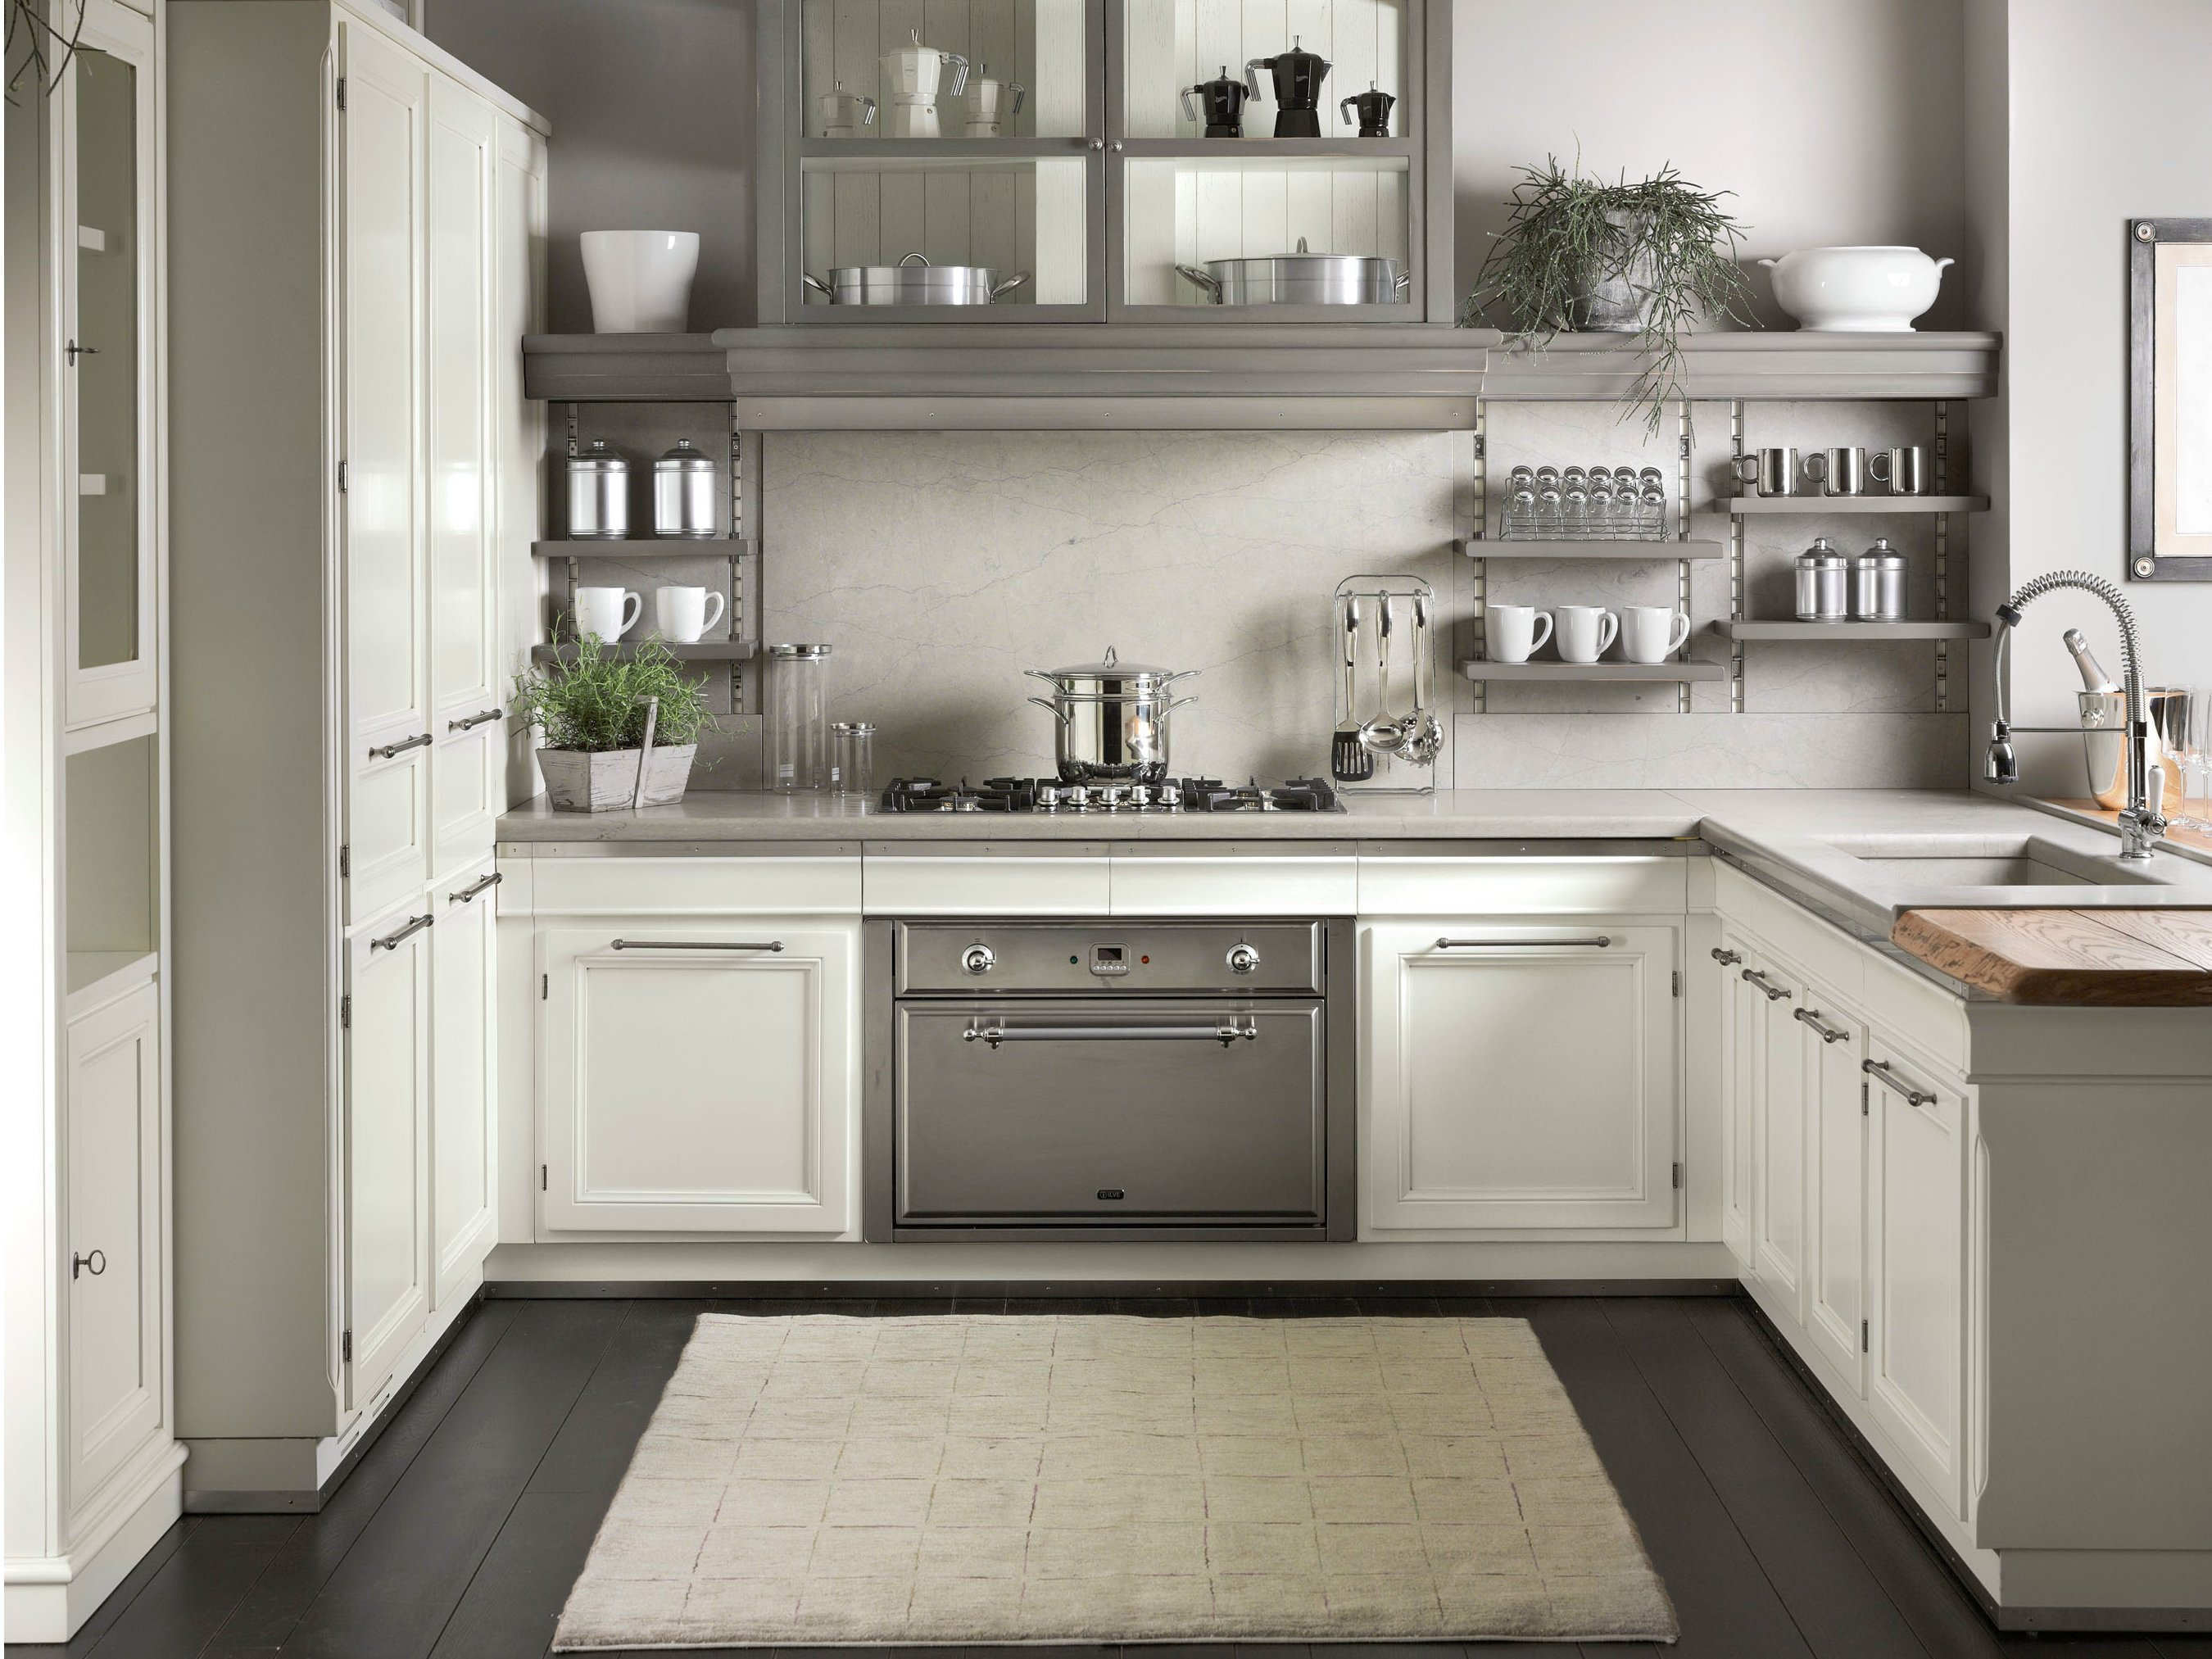 Cucina laccata con penisola living light by l 39 ottocento for Grey and white country kitchen